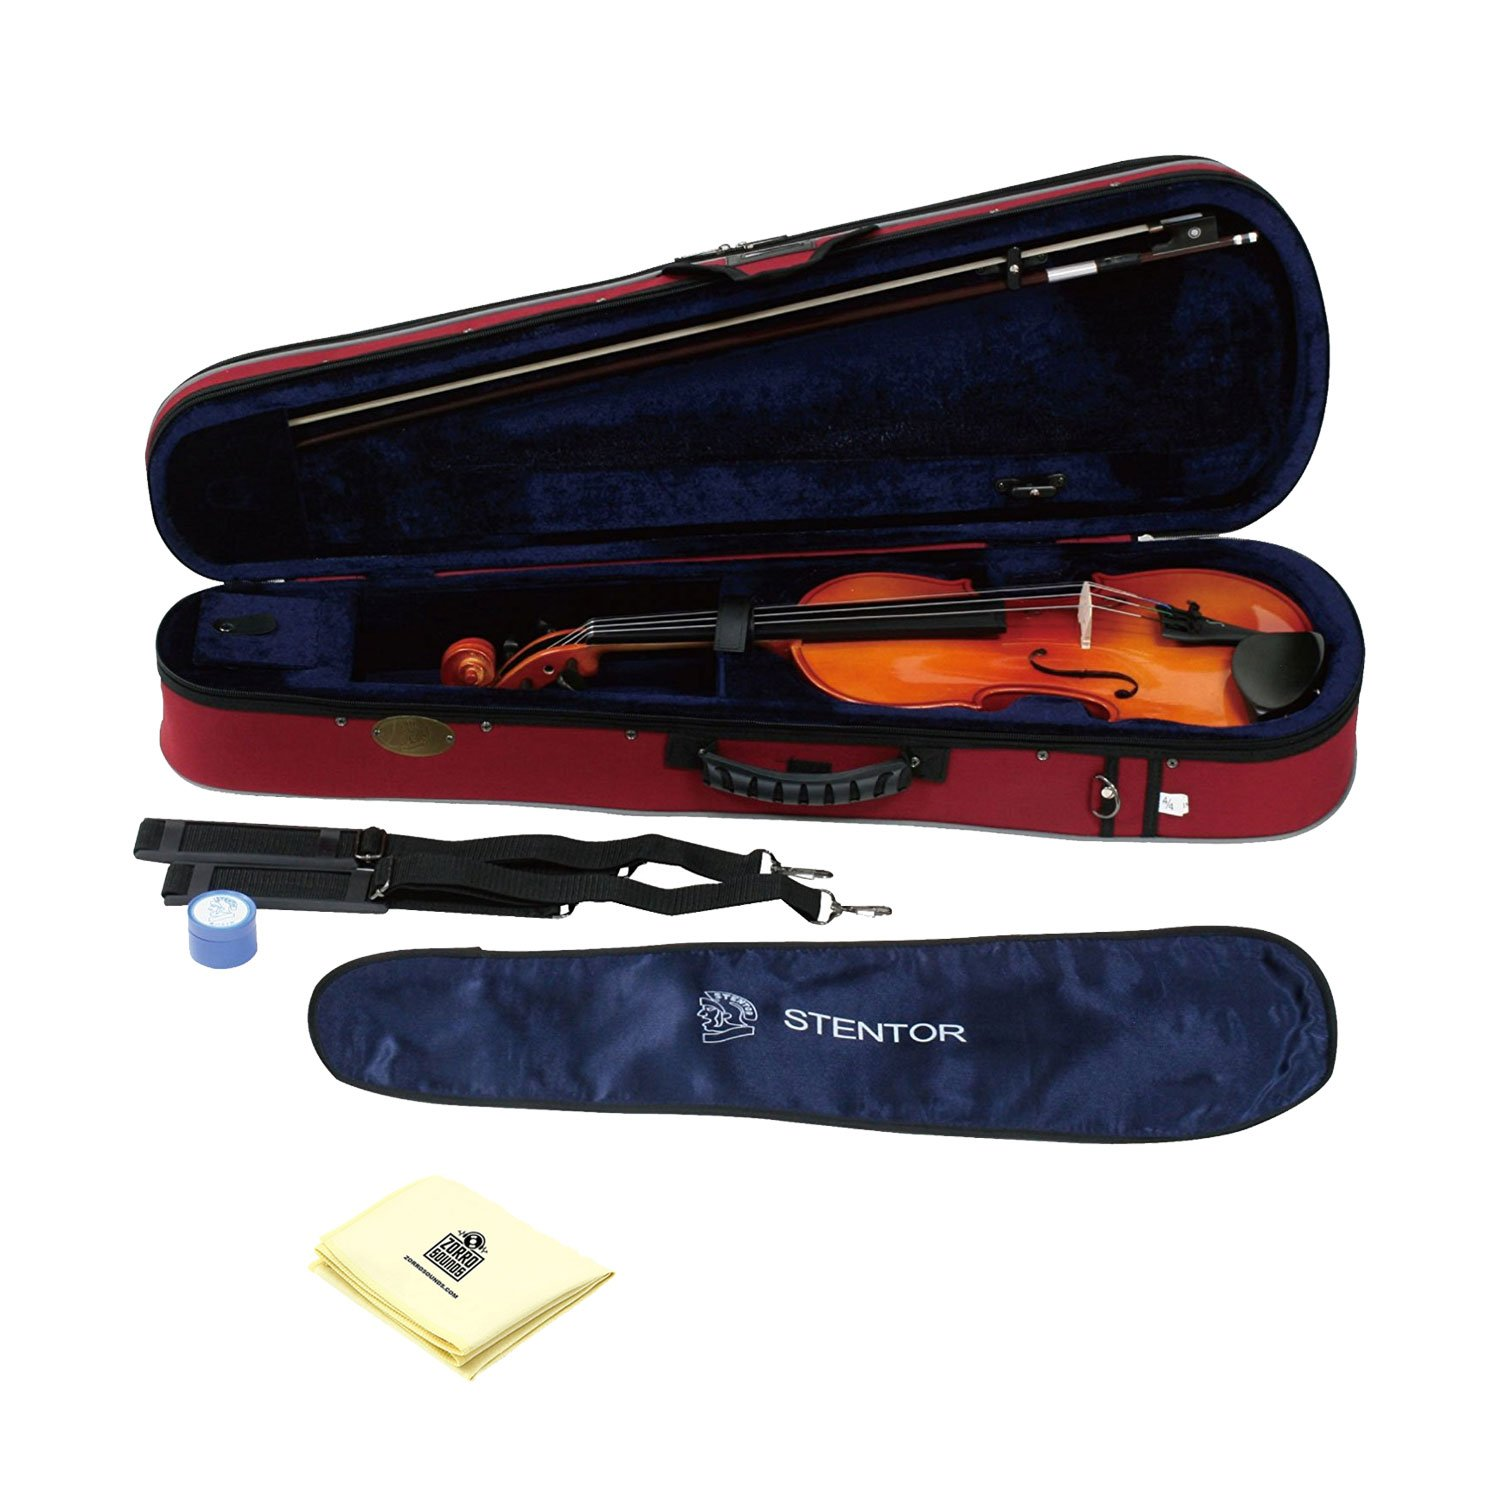 Stentor 1500-4/4 Student II Violin Outfit- Size 4/4 with Zorro Sounds Violin Polishing Cloth